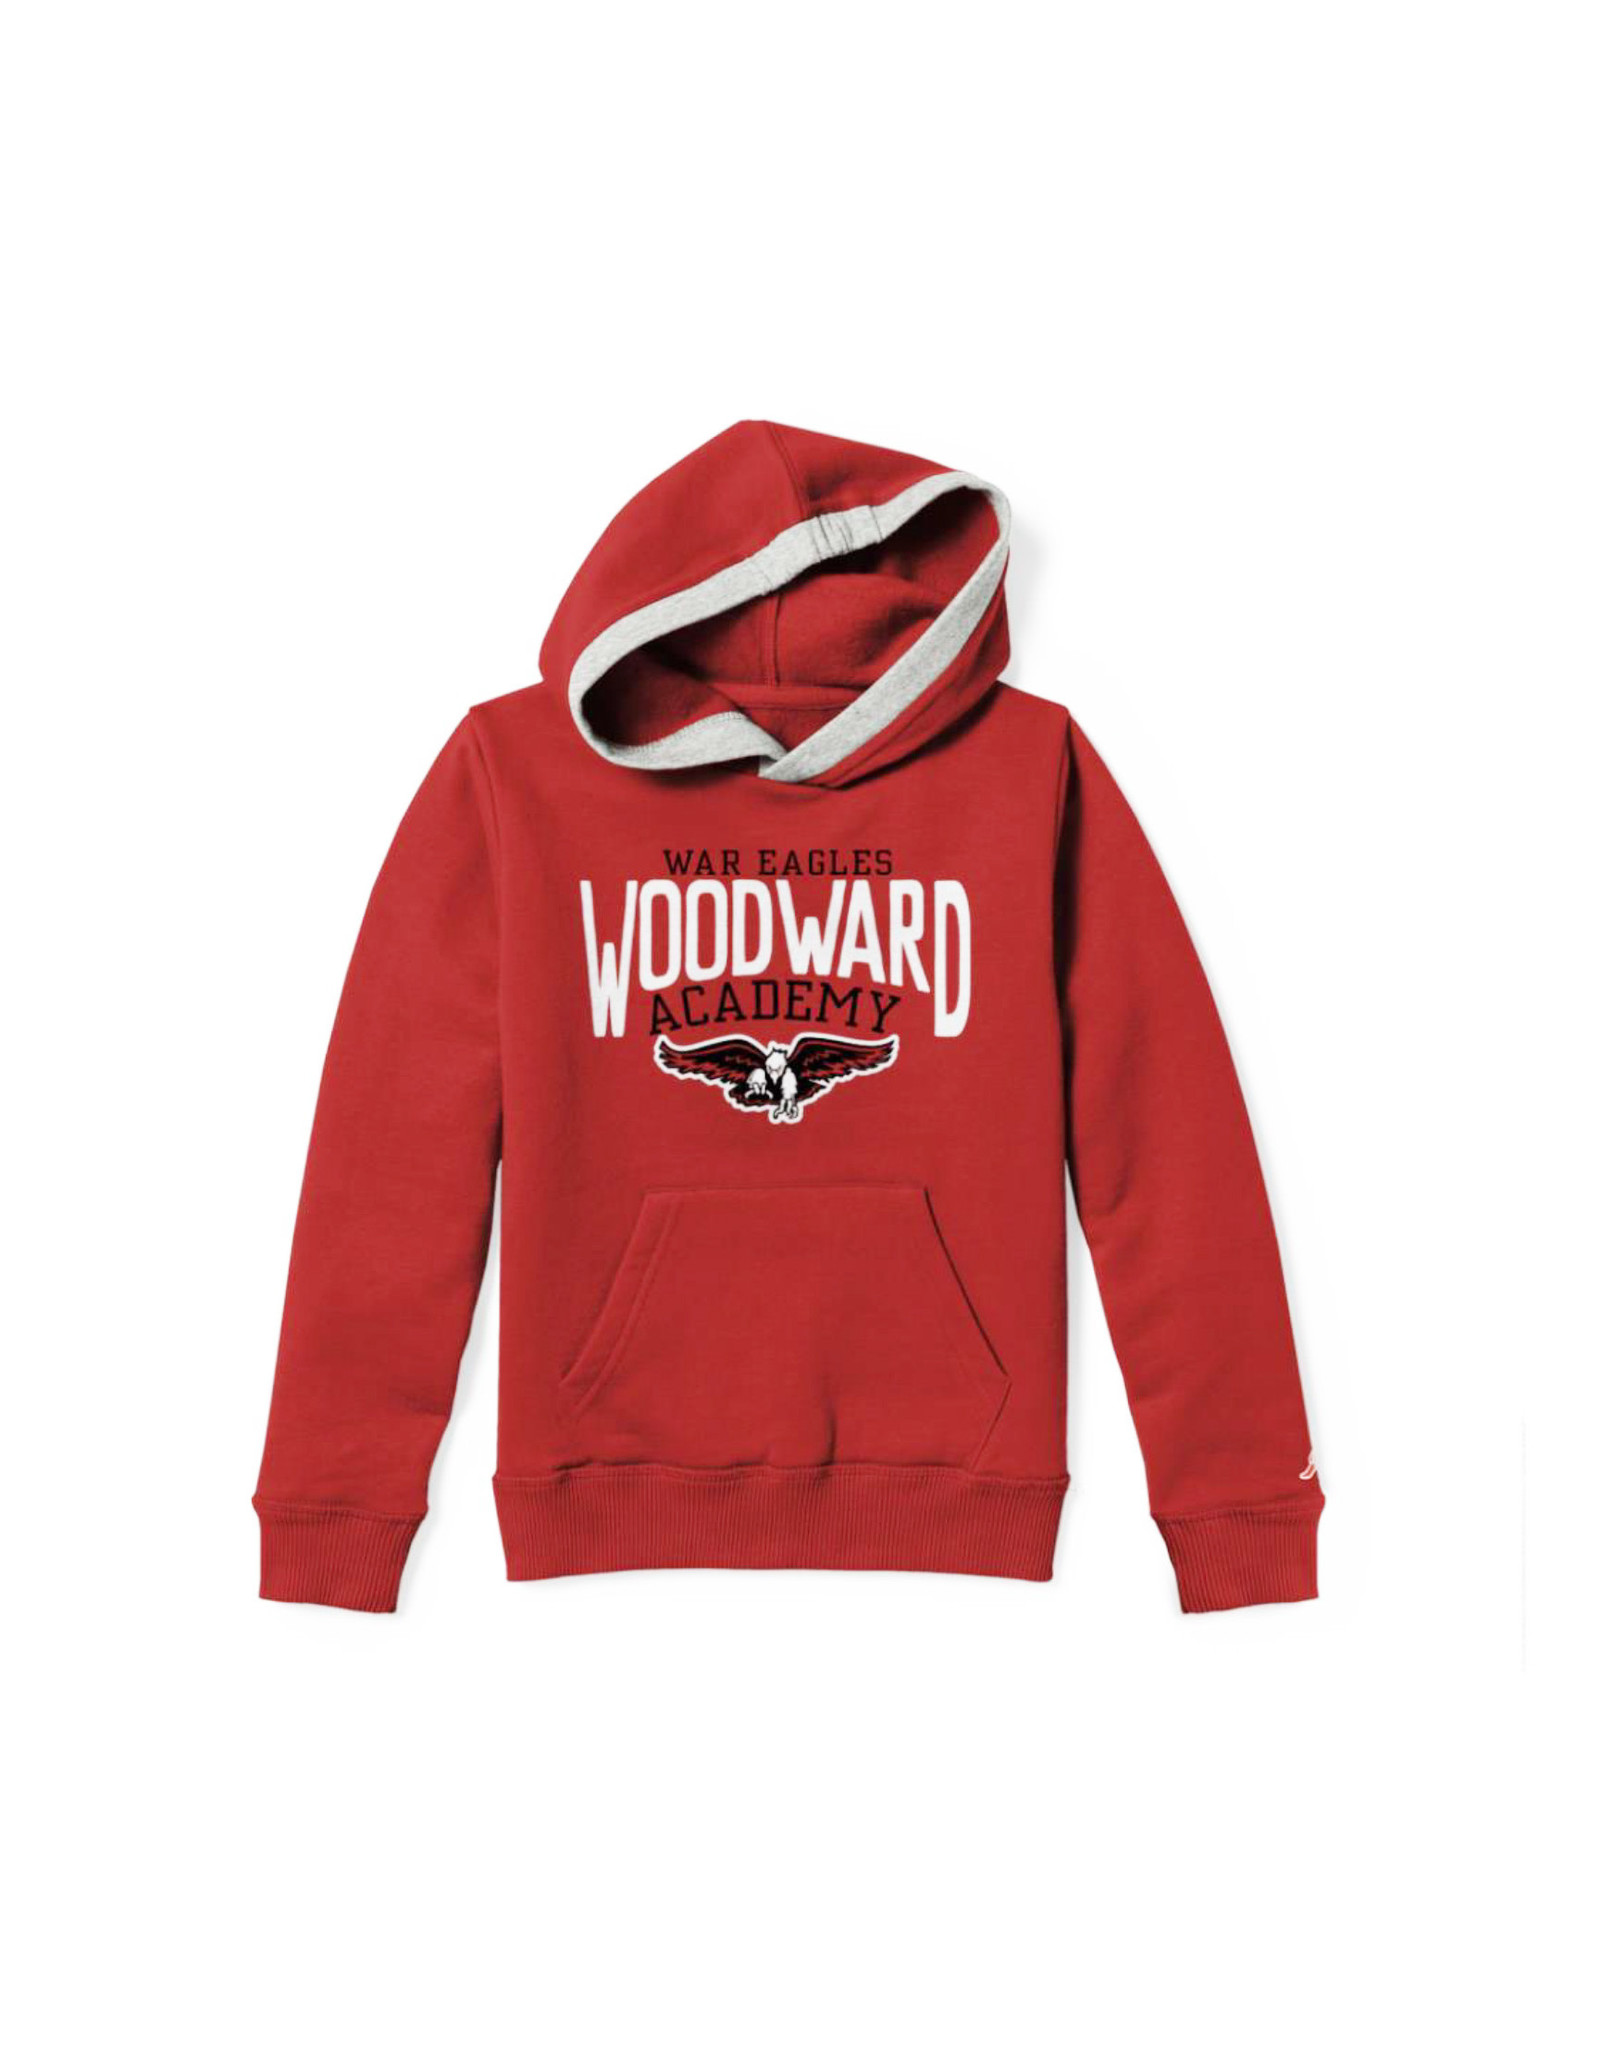 League Youth Cotton Blend Hooded Sweatshirt in Red by League